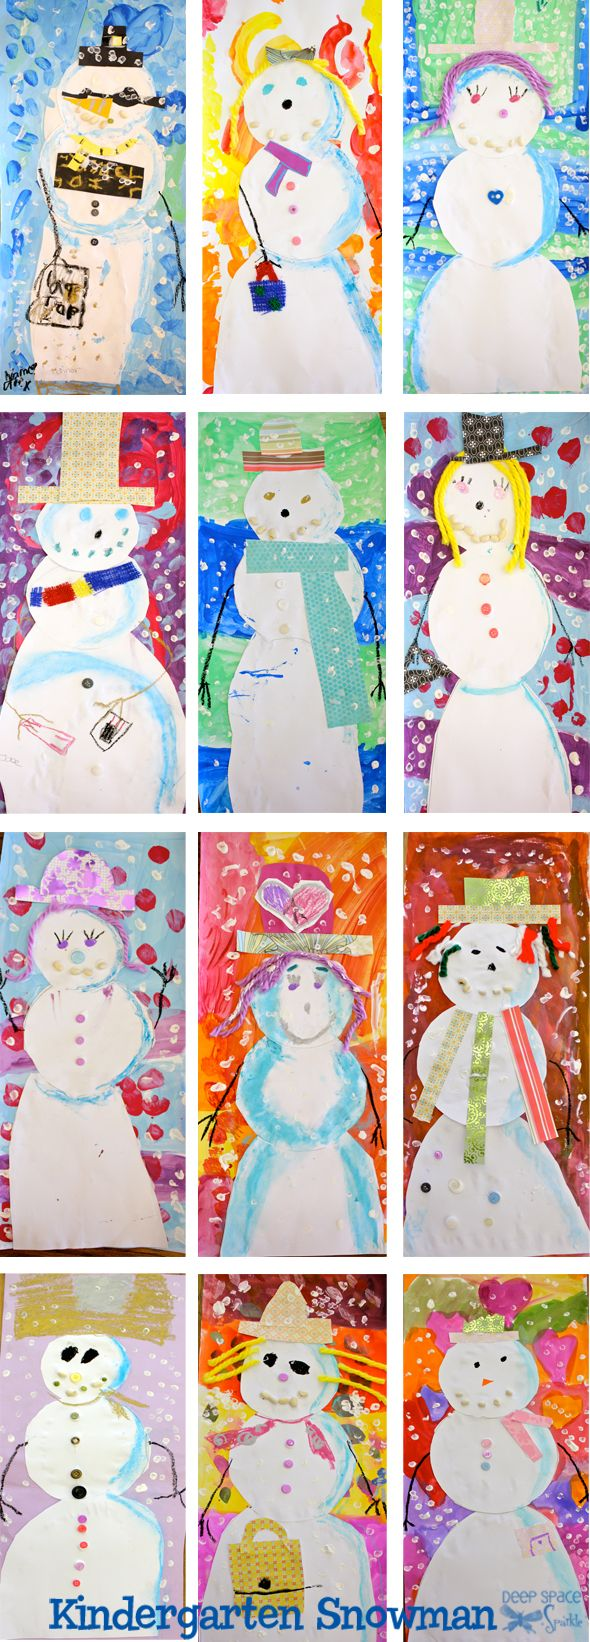 Snowman art project from DSS